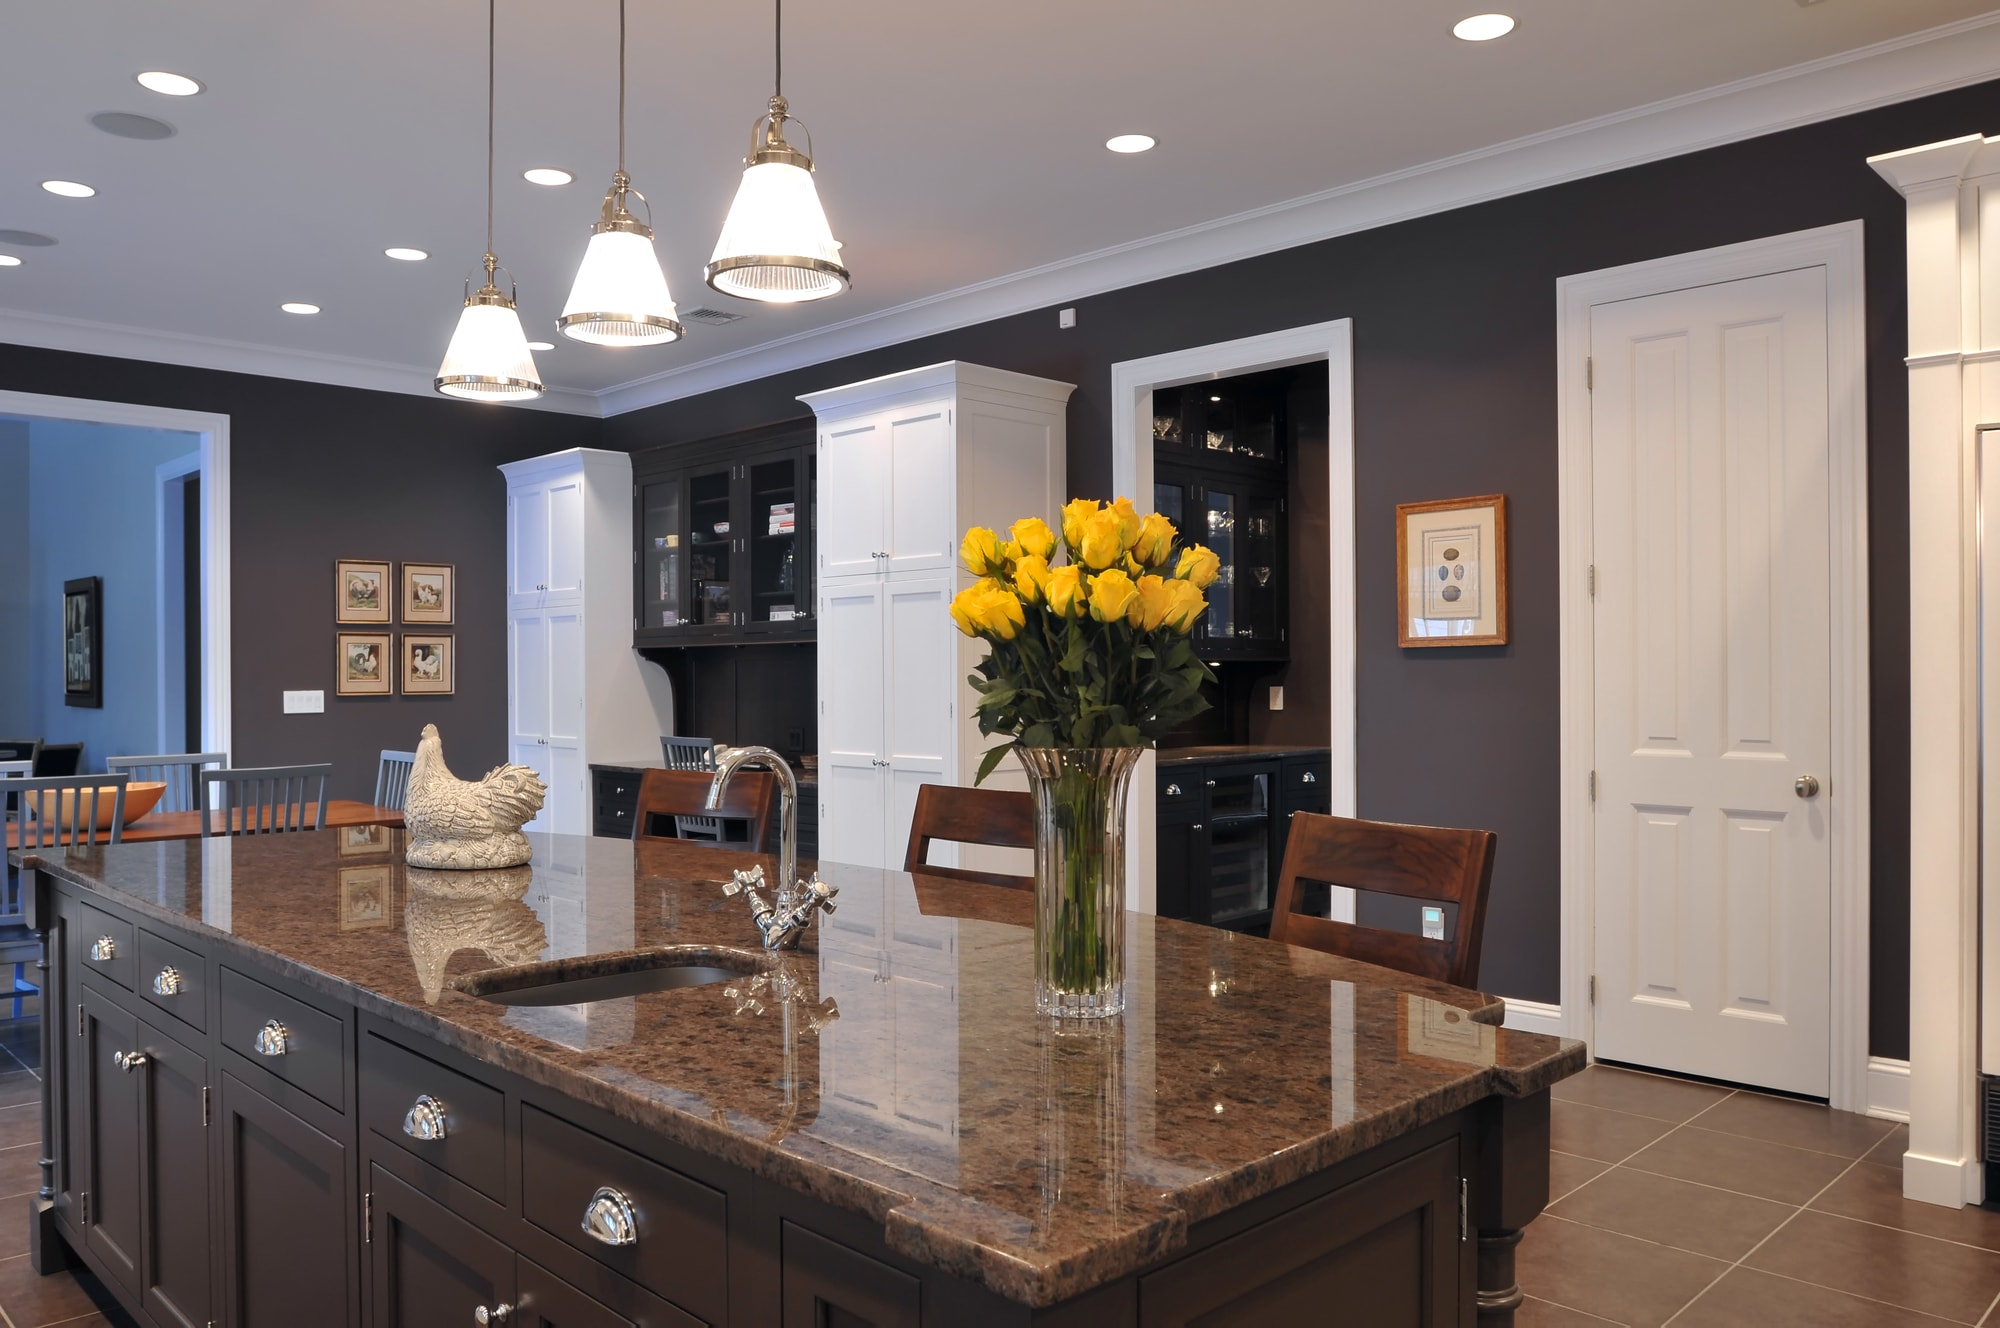 Traditional style kitchen with dark granite countertop